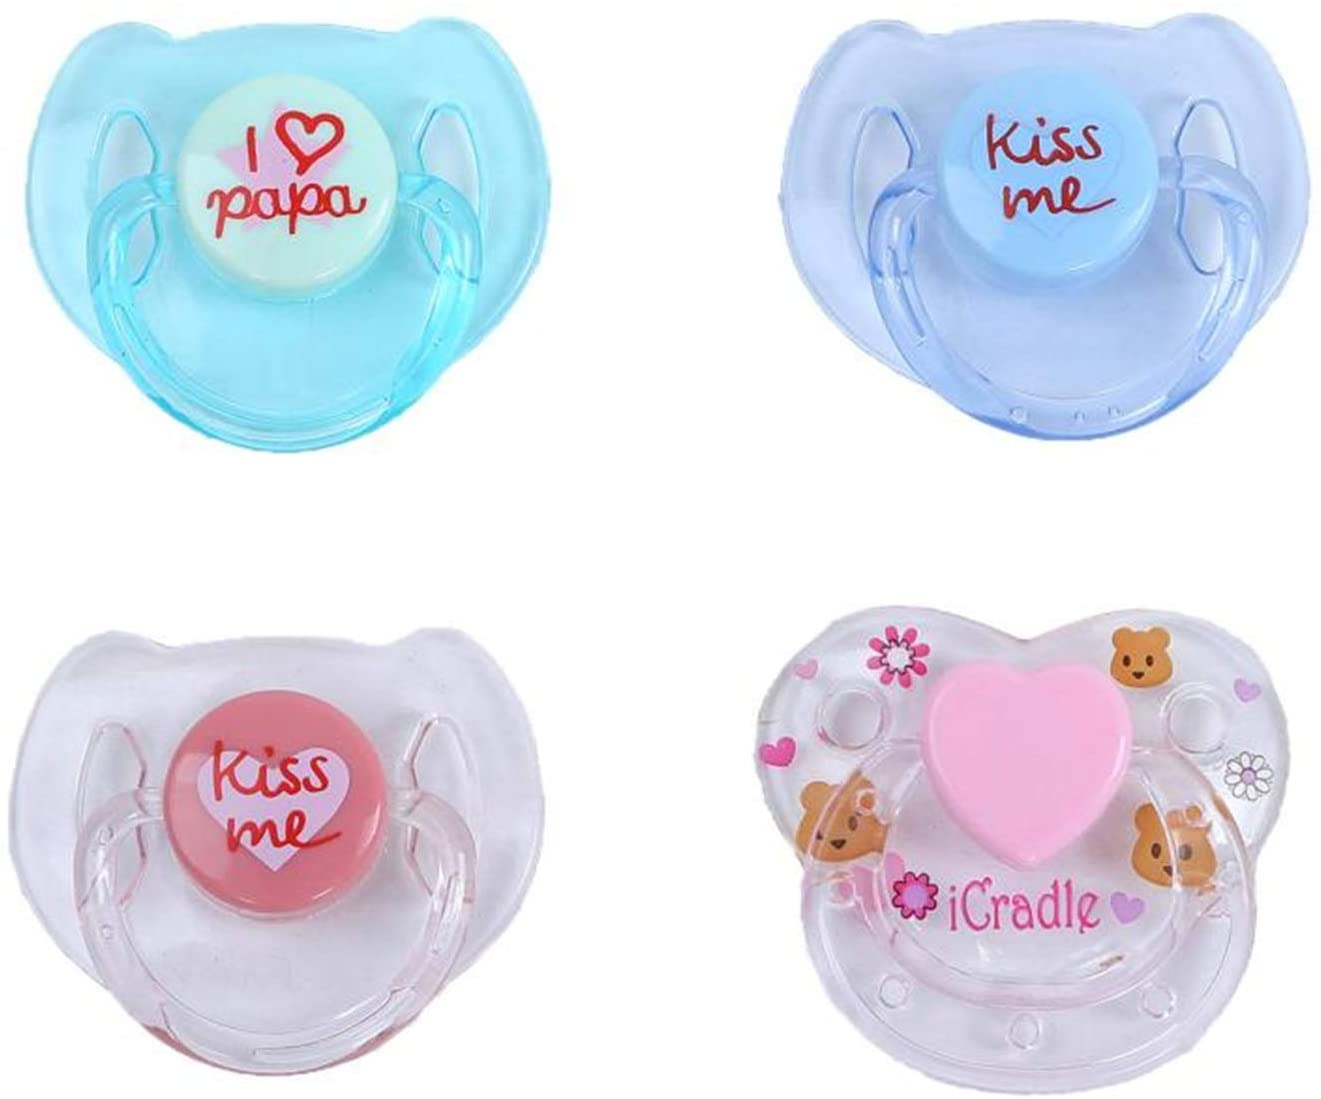 Zero Pam 4 pcs Magnetic Pacifier for Reborn Baby Doll, Tiny Acrylic Dummy Pacifiers for Replacement of Newborn Reborn Doll Kits Supplies 4 Colors